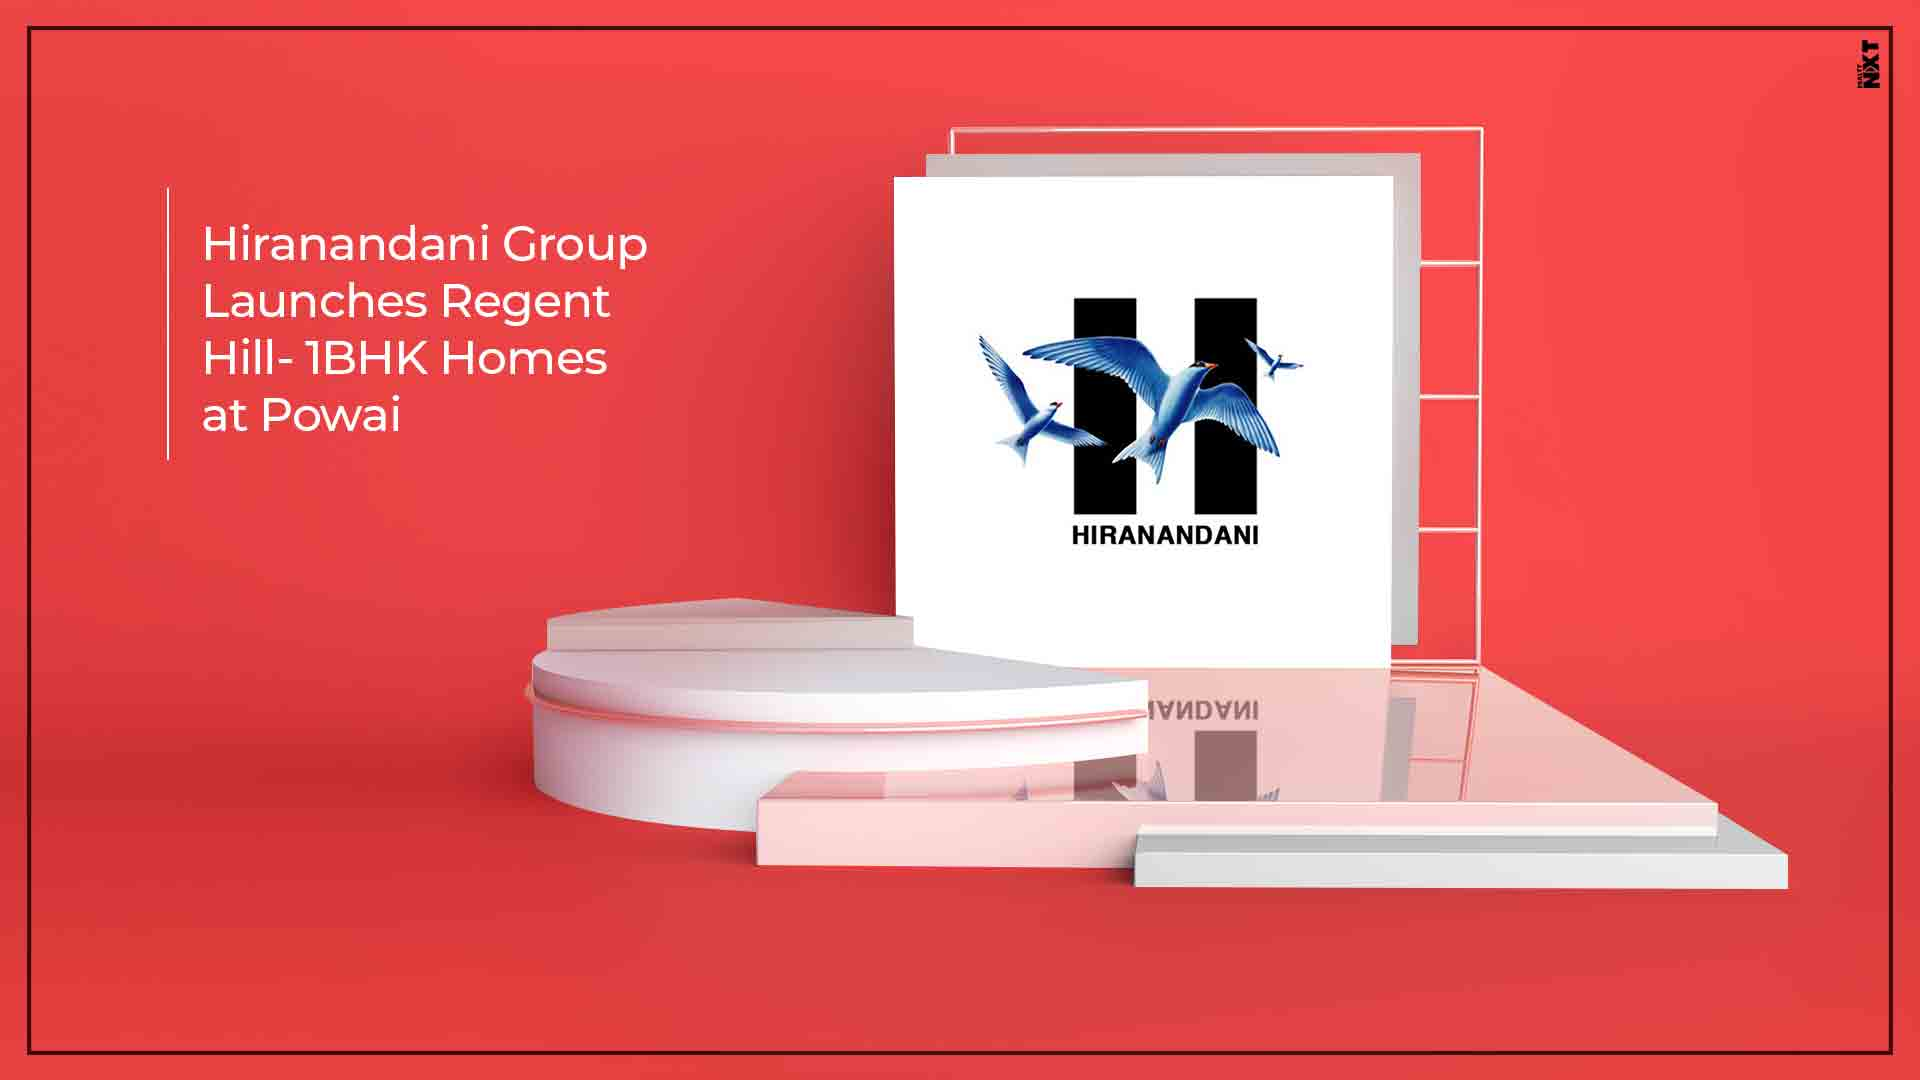 Hiranandani Group Launches Regent Hill- 1BHK Homes at Powai